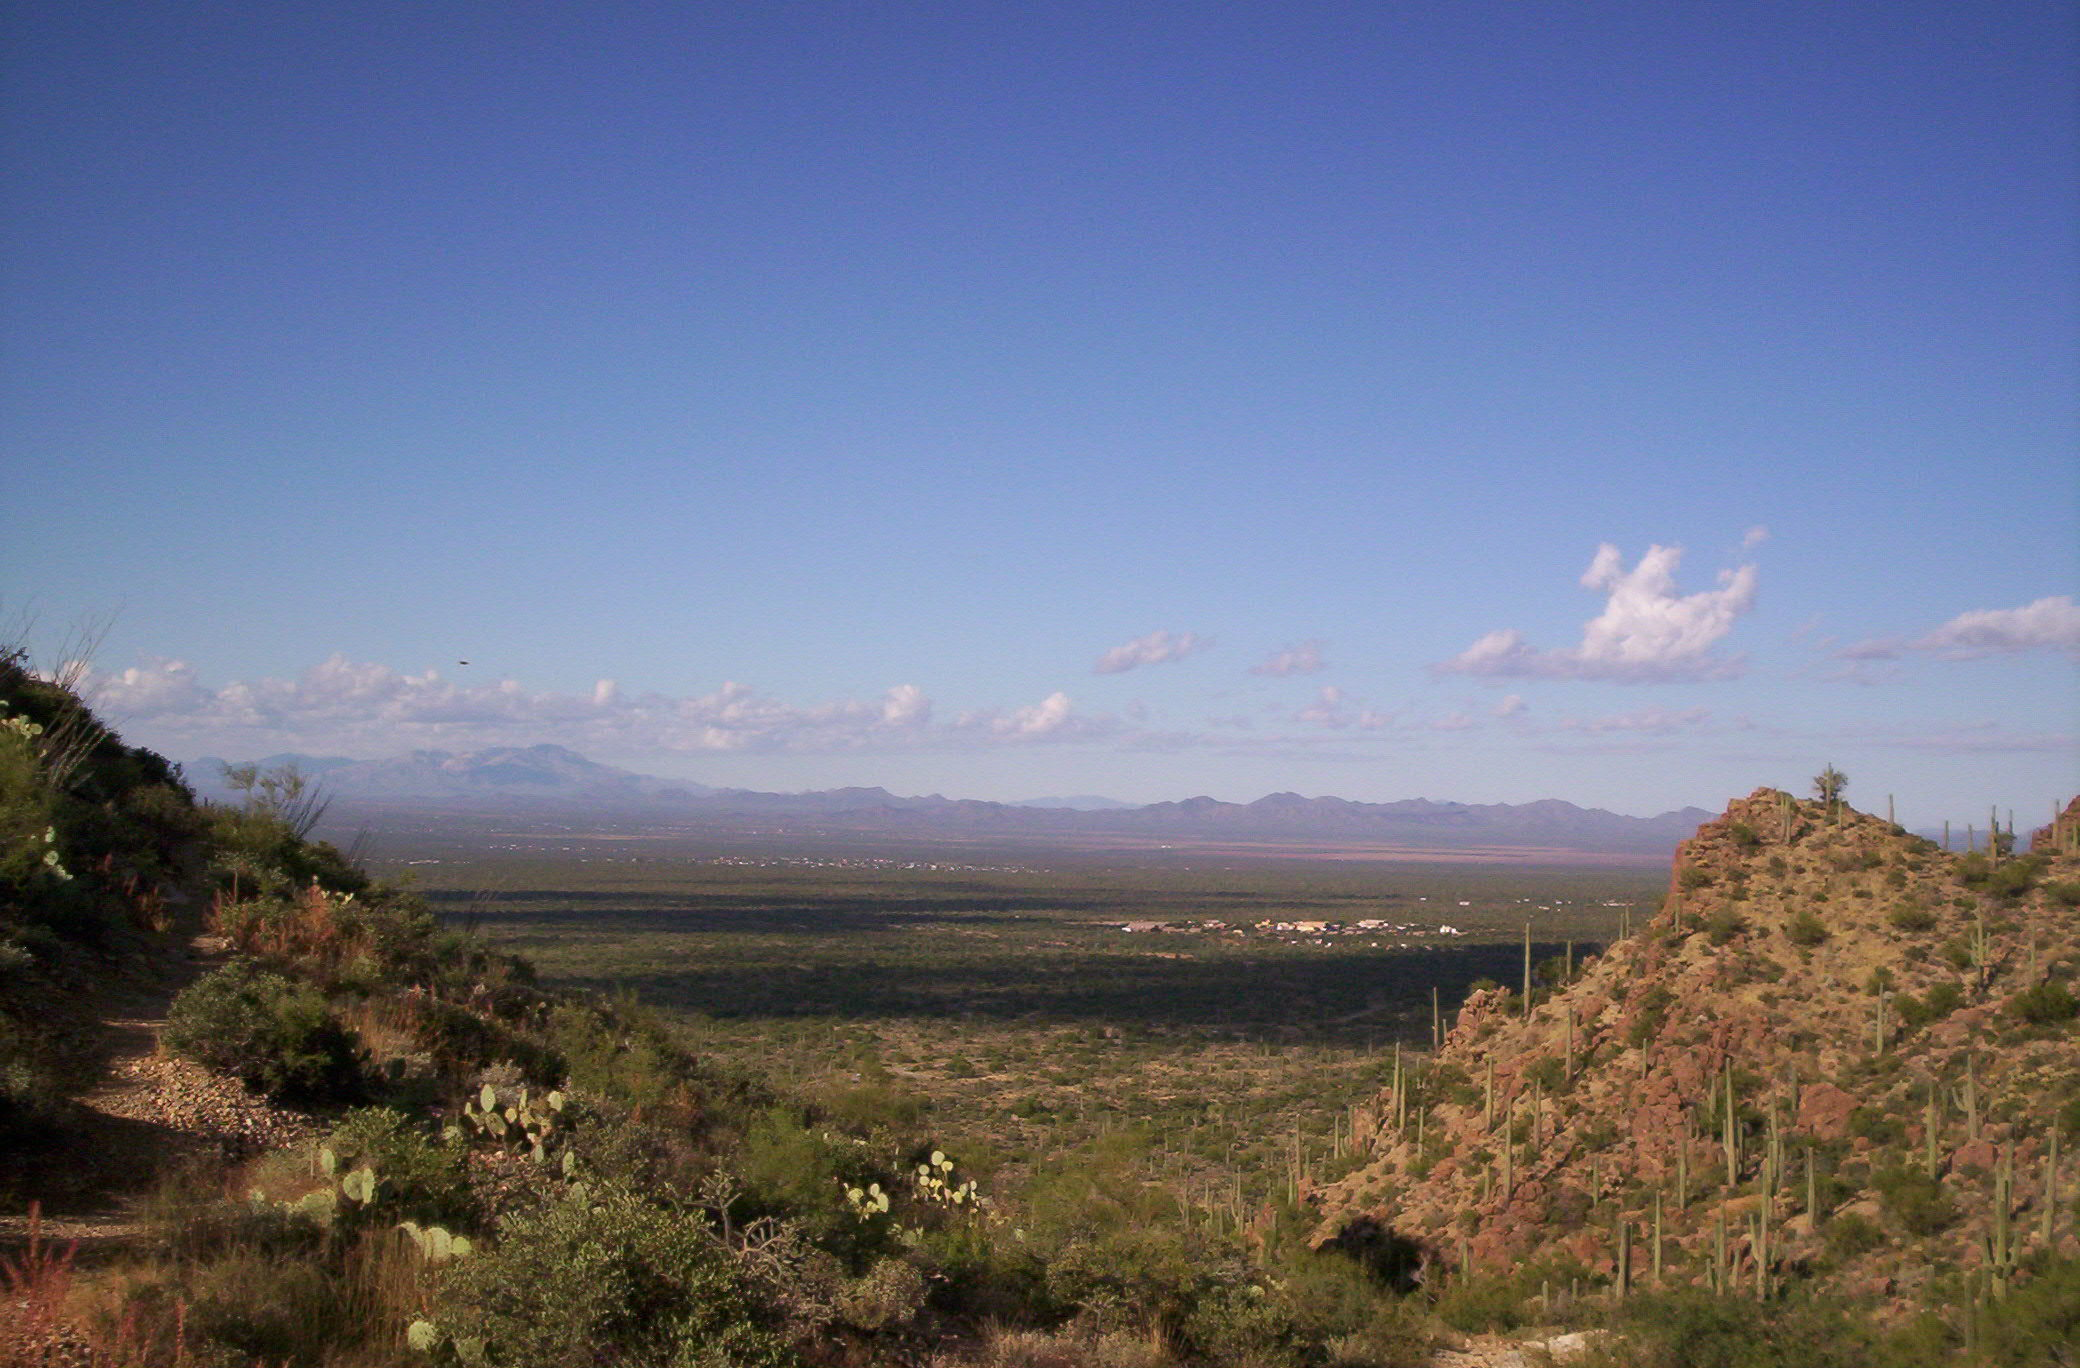 arizona images tucson- view from gates pass hd wallpaper and